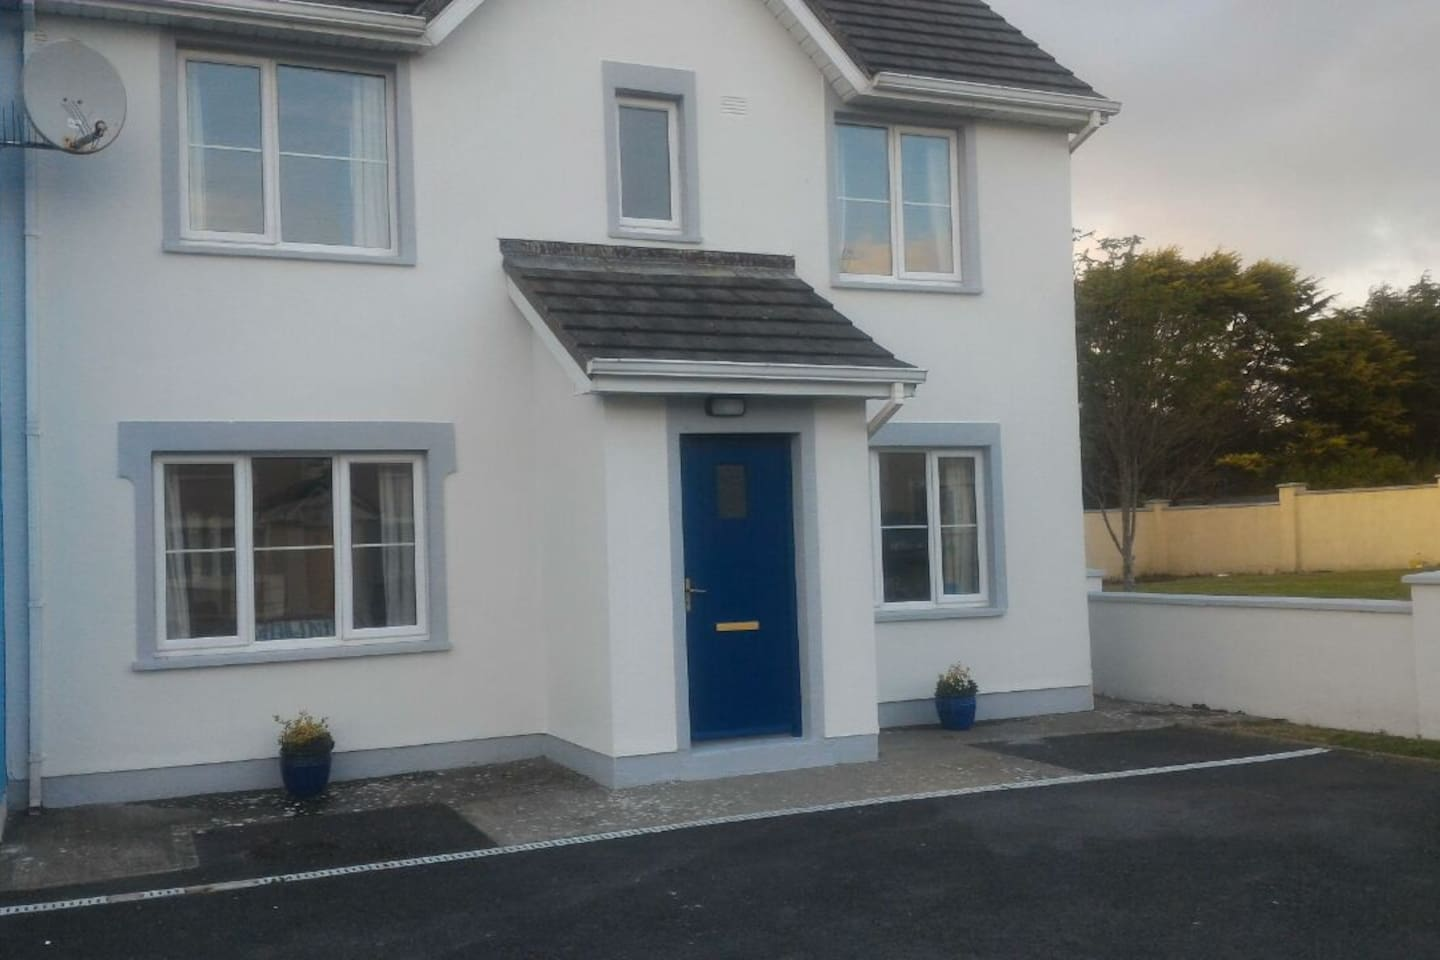 Front of House. 2 Storey semi detached.